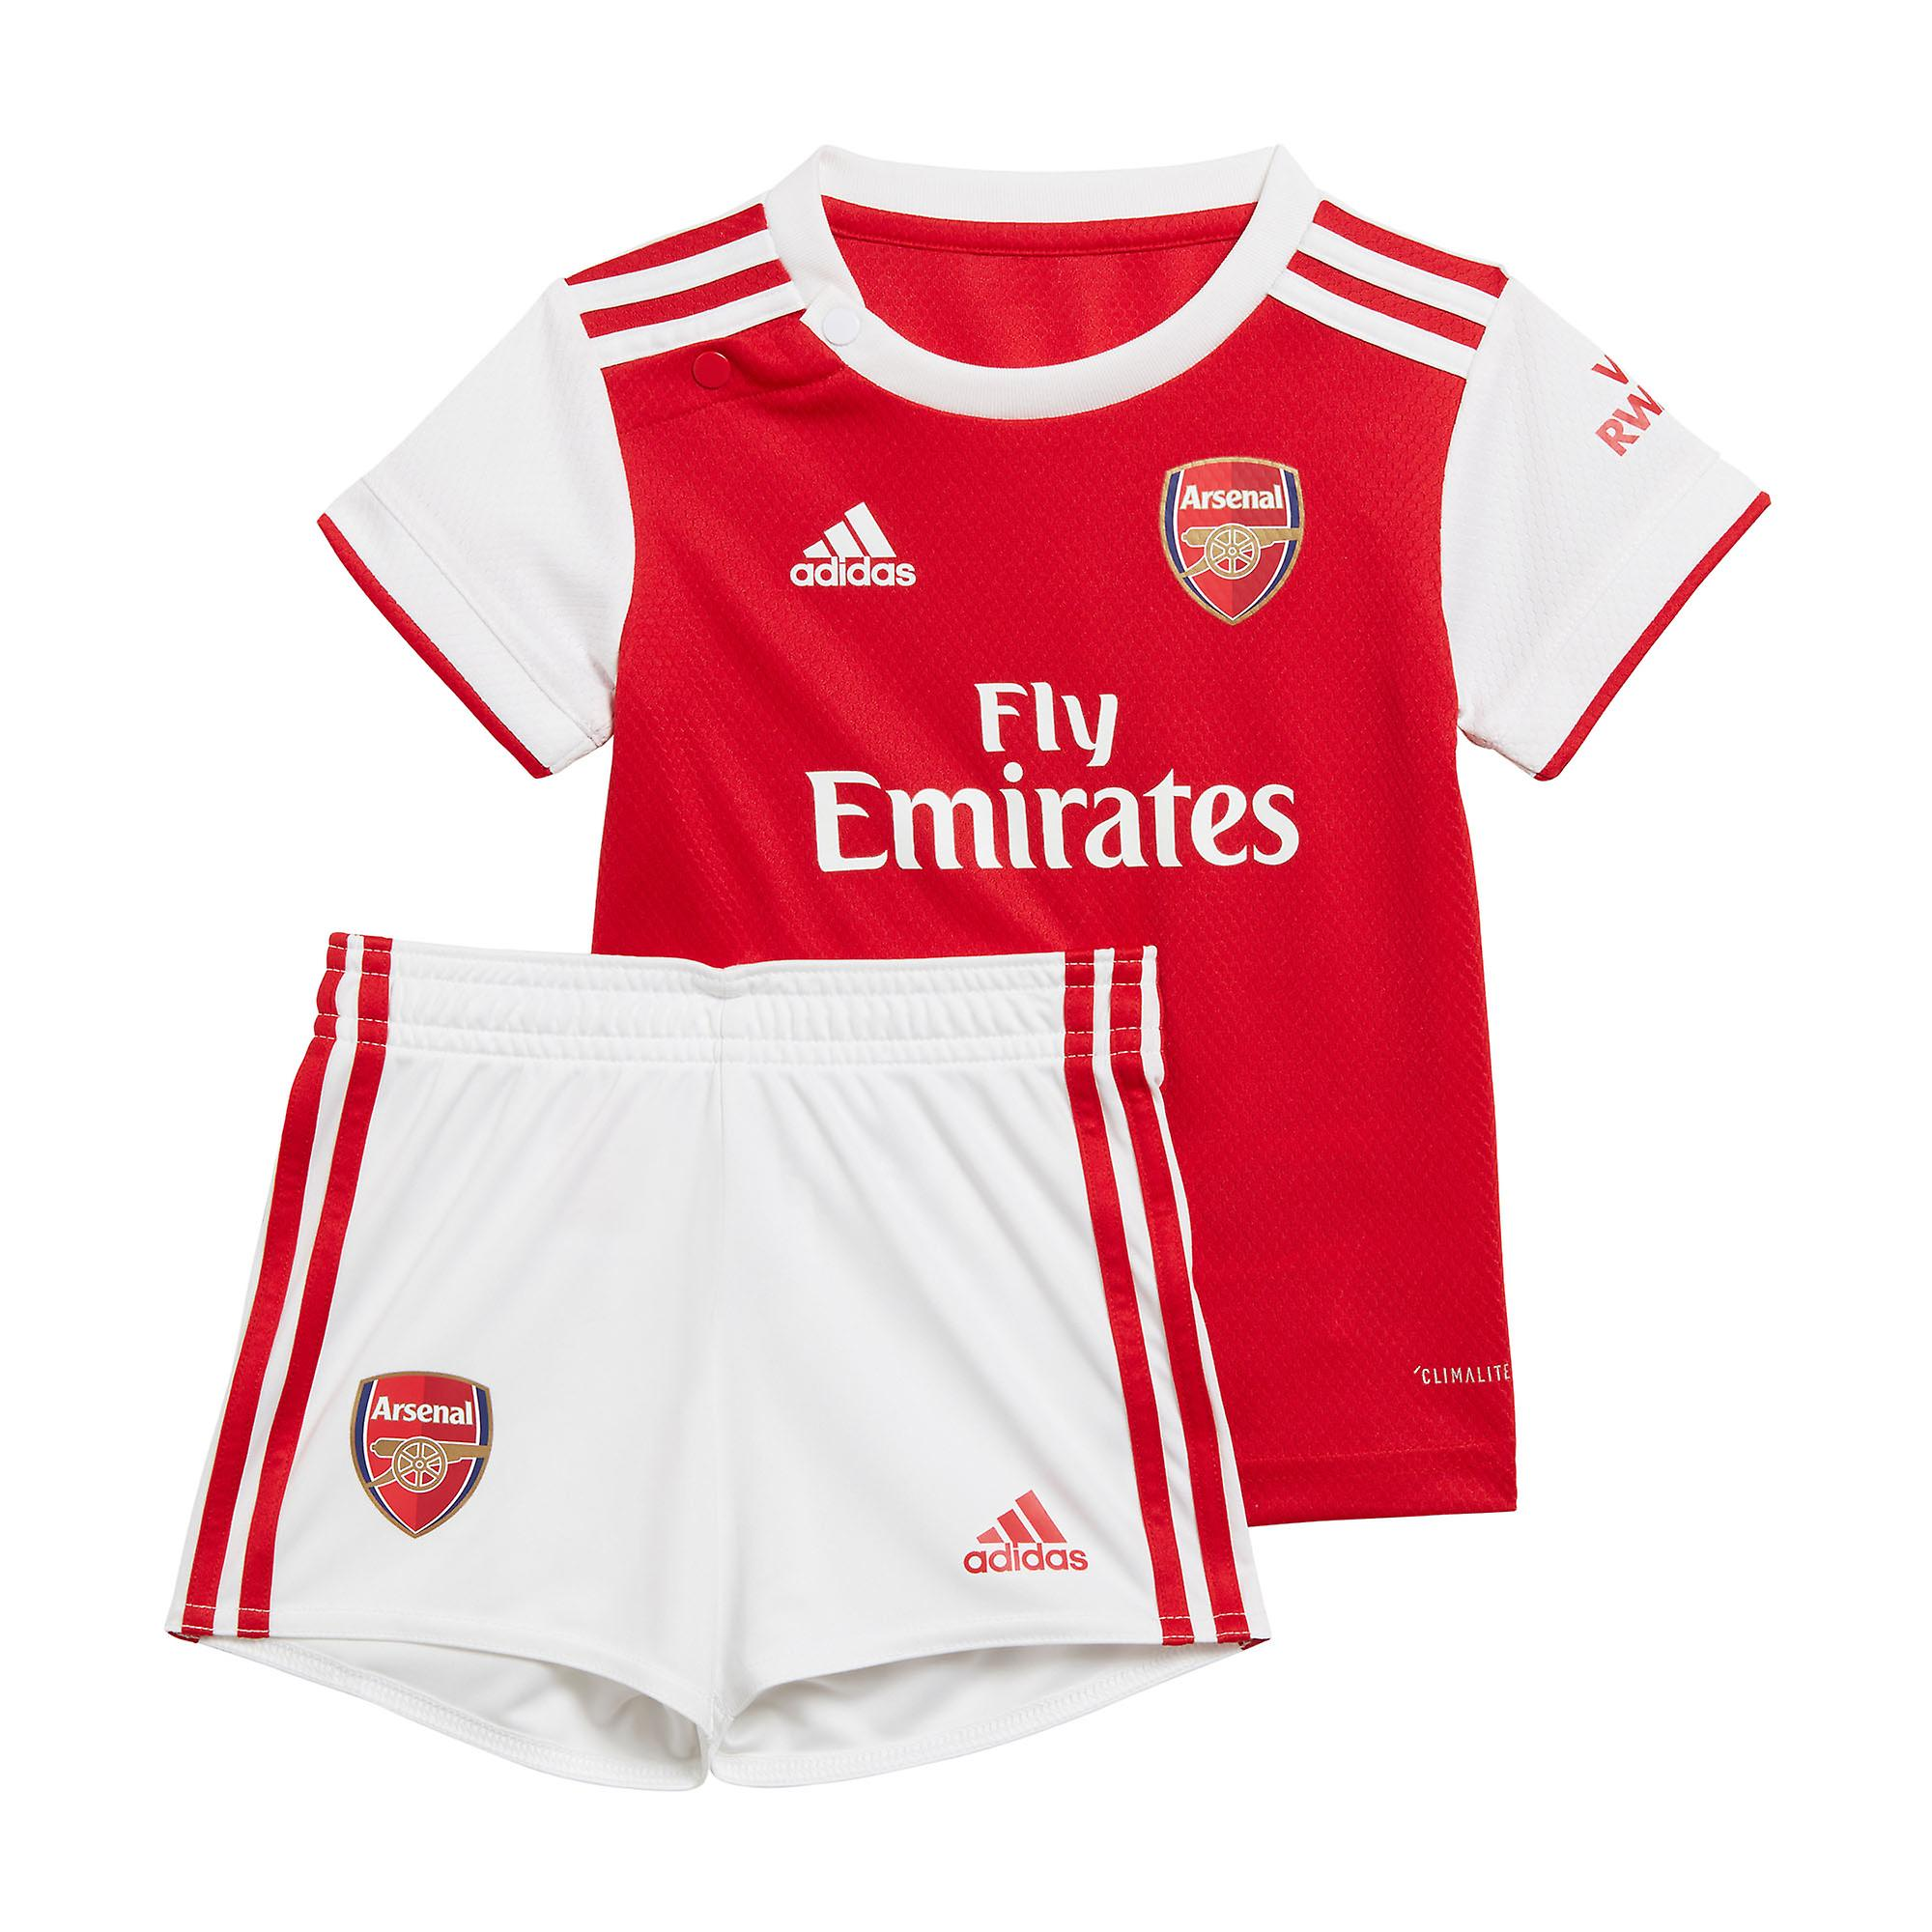 adidas Arsenal 2019/20 Infant Kids Baby Home Football Kit Red